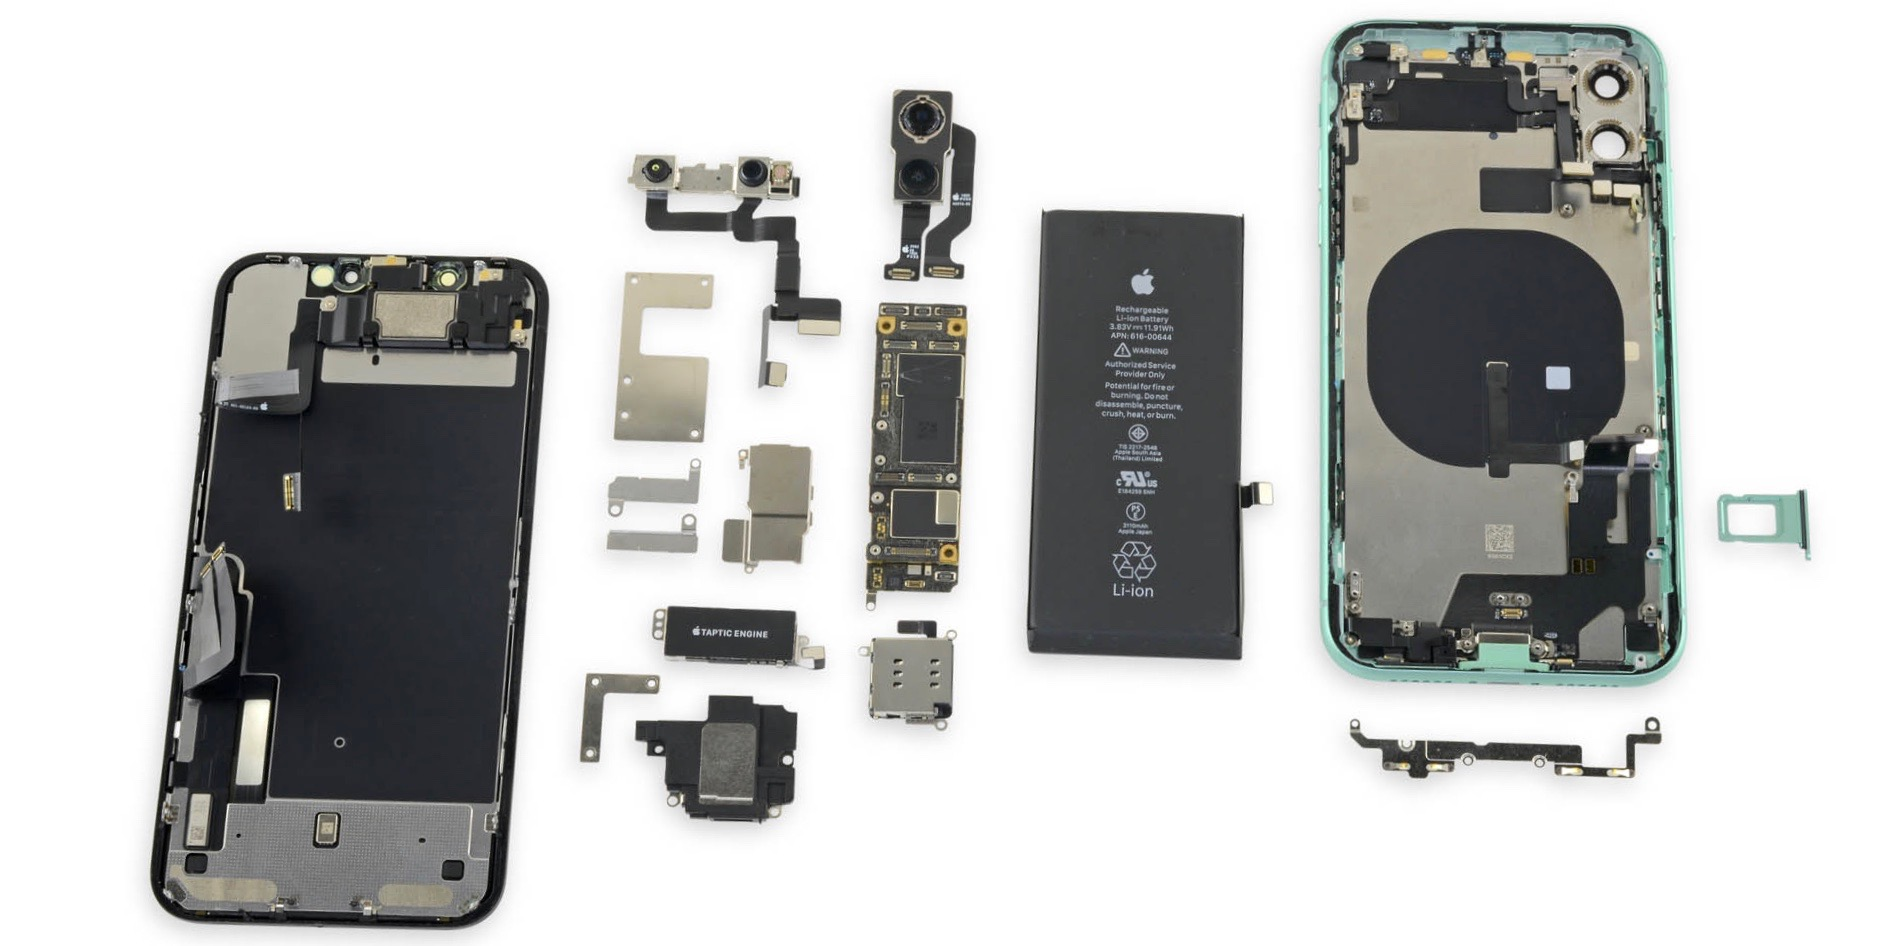 Iphone 11 Teardown Reveals Lack Of Bilateral Wireless Charging Evidence Same Logic Board As Pro Models More 9to5mac